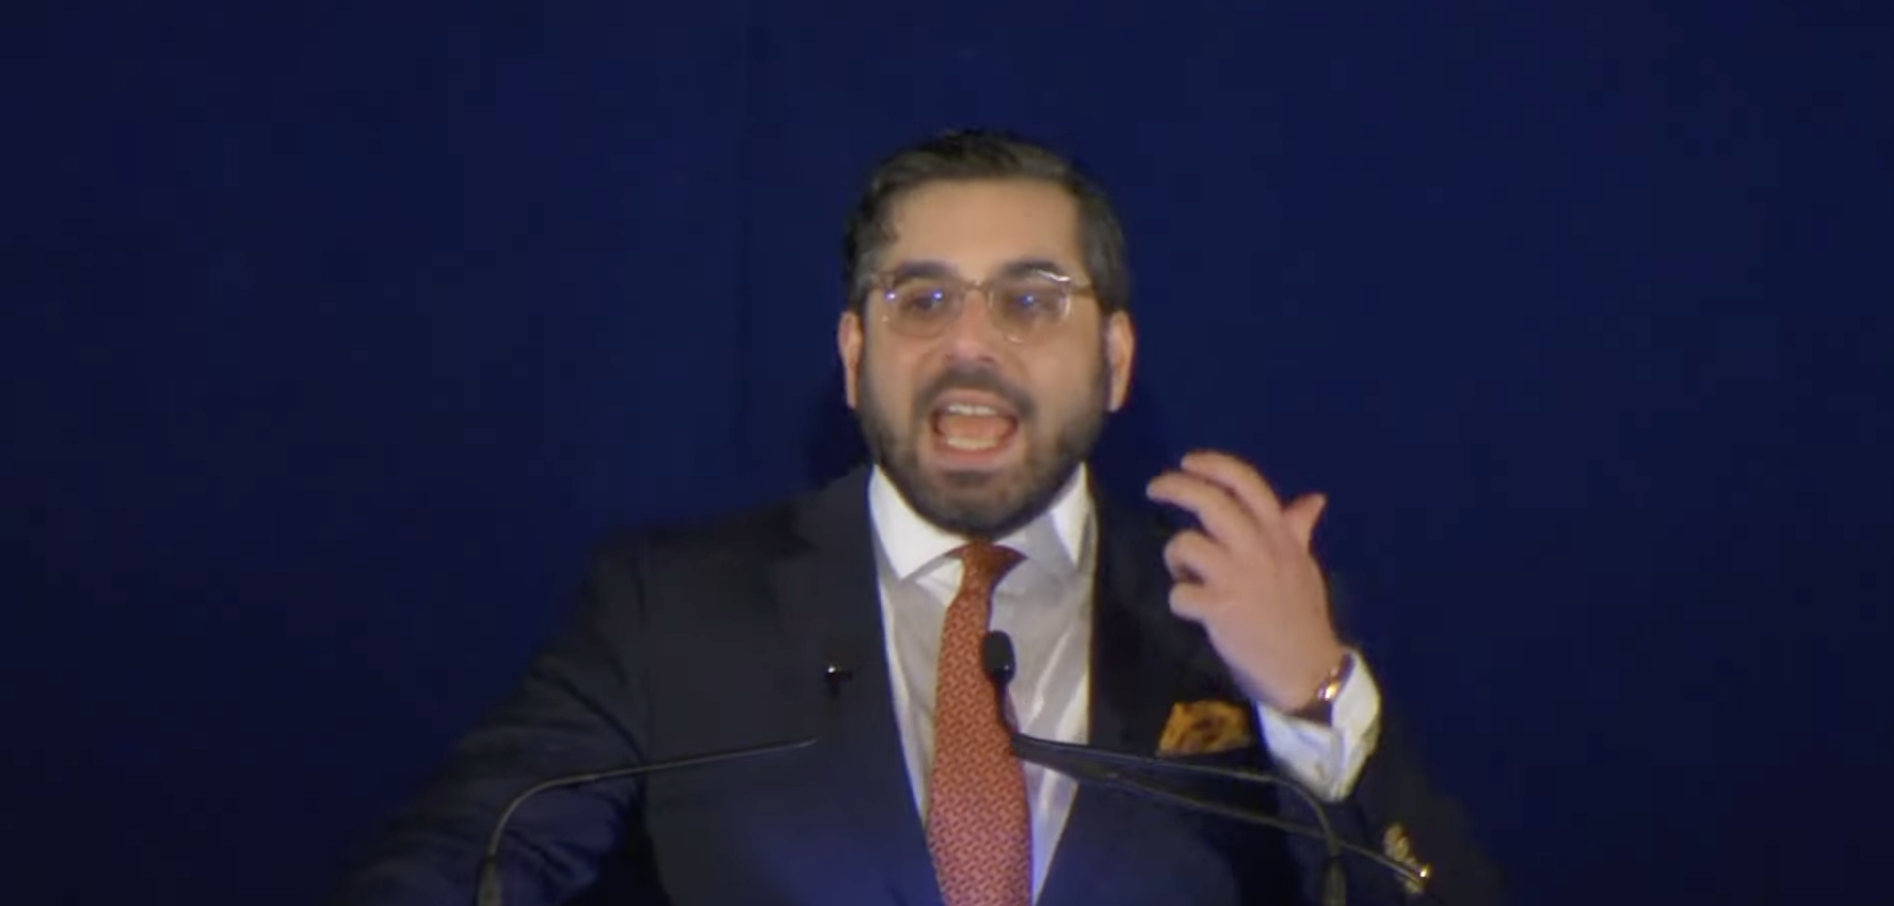 WATCH: Kassam Blasts Never Trumpism, Corporate Conservatism at Fiery Hillsdale Speech.